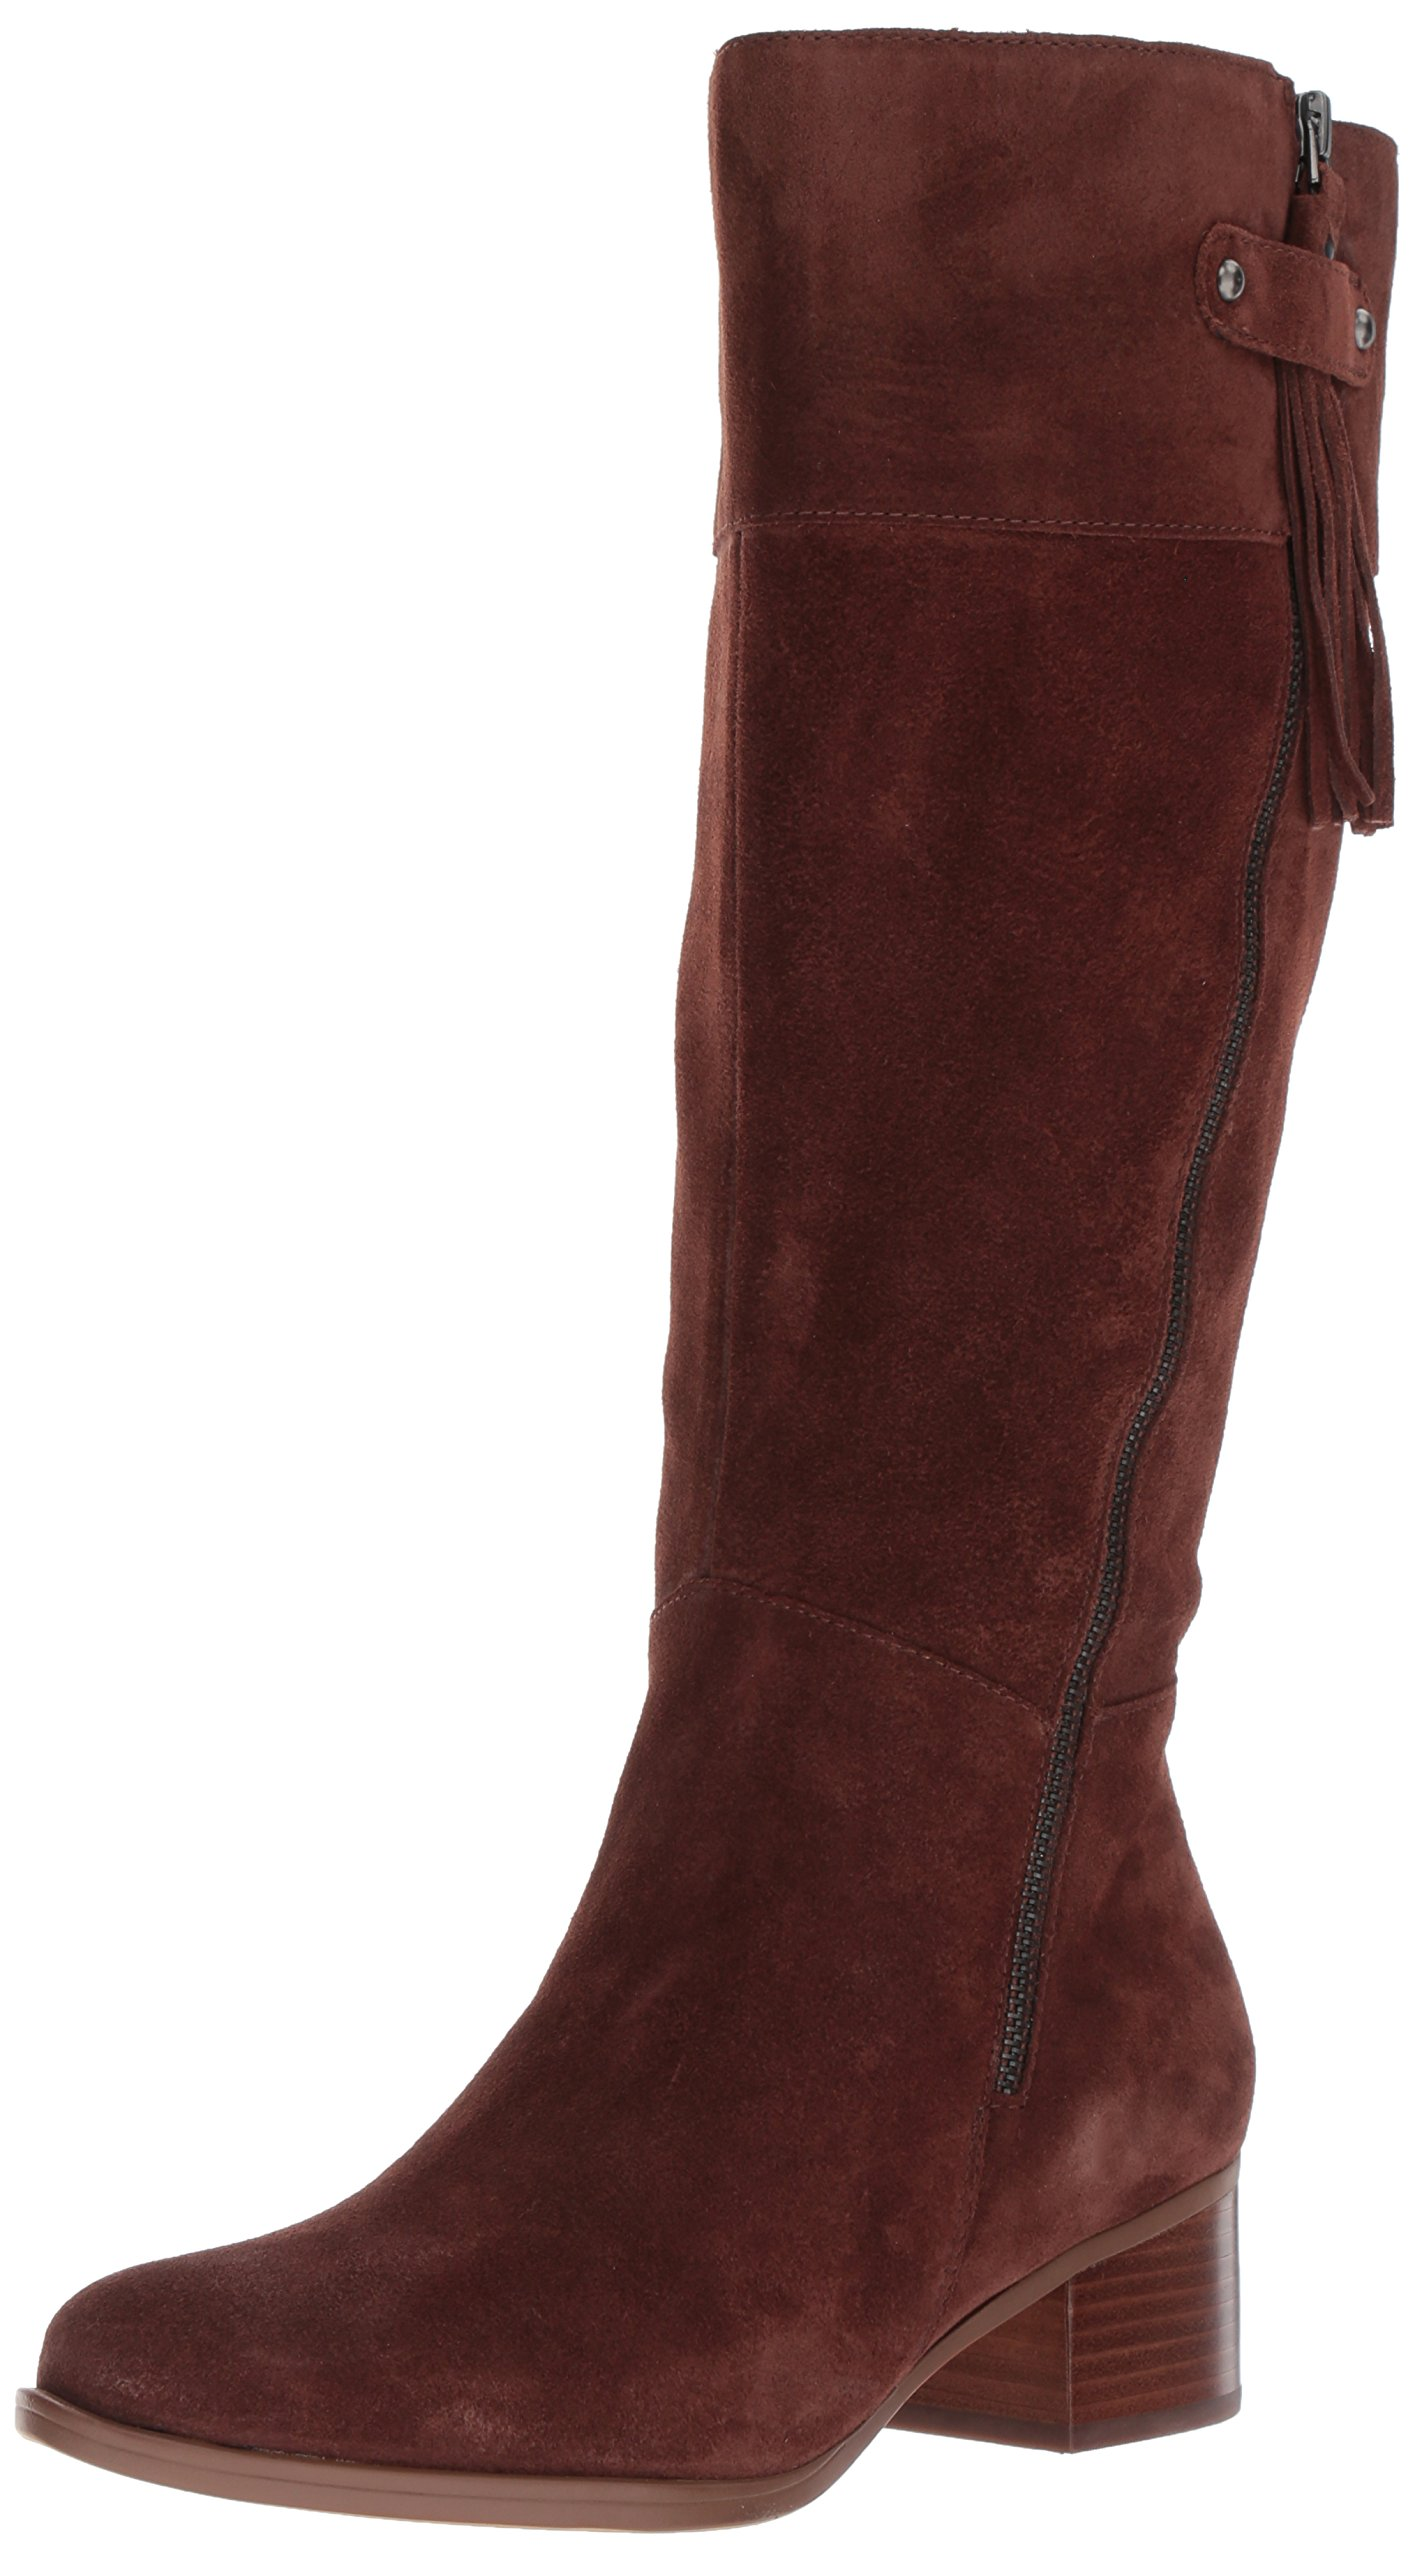 Naturalizer Women's Demi Wc Riding Boot, Chocolate, 8.5 M US